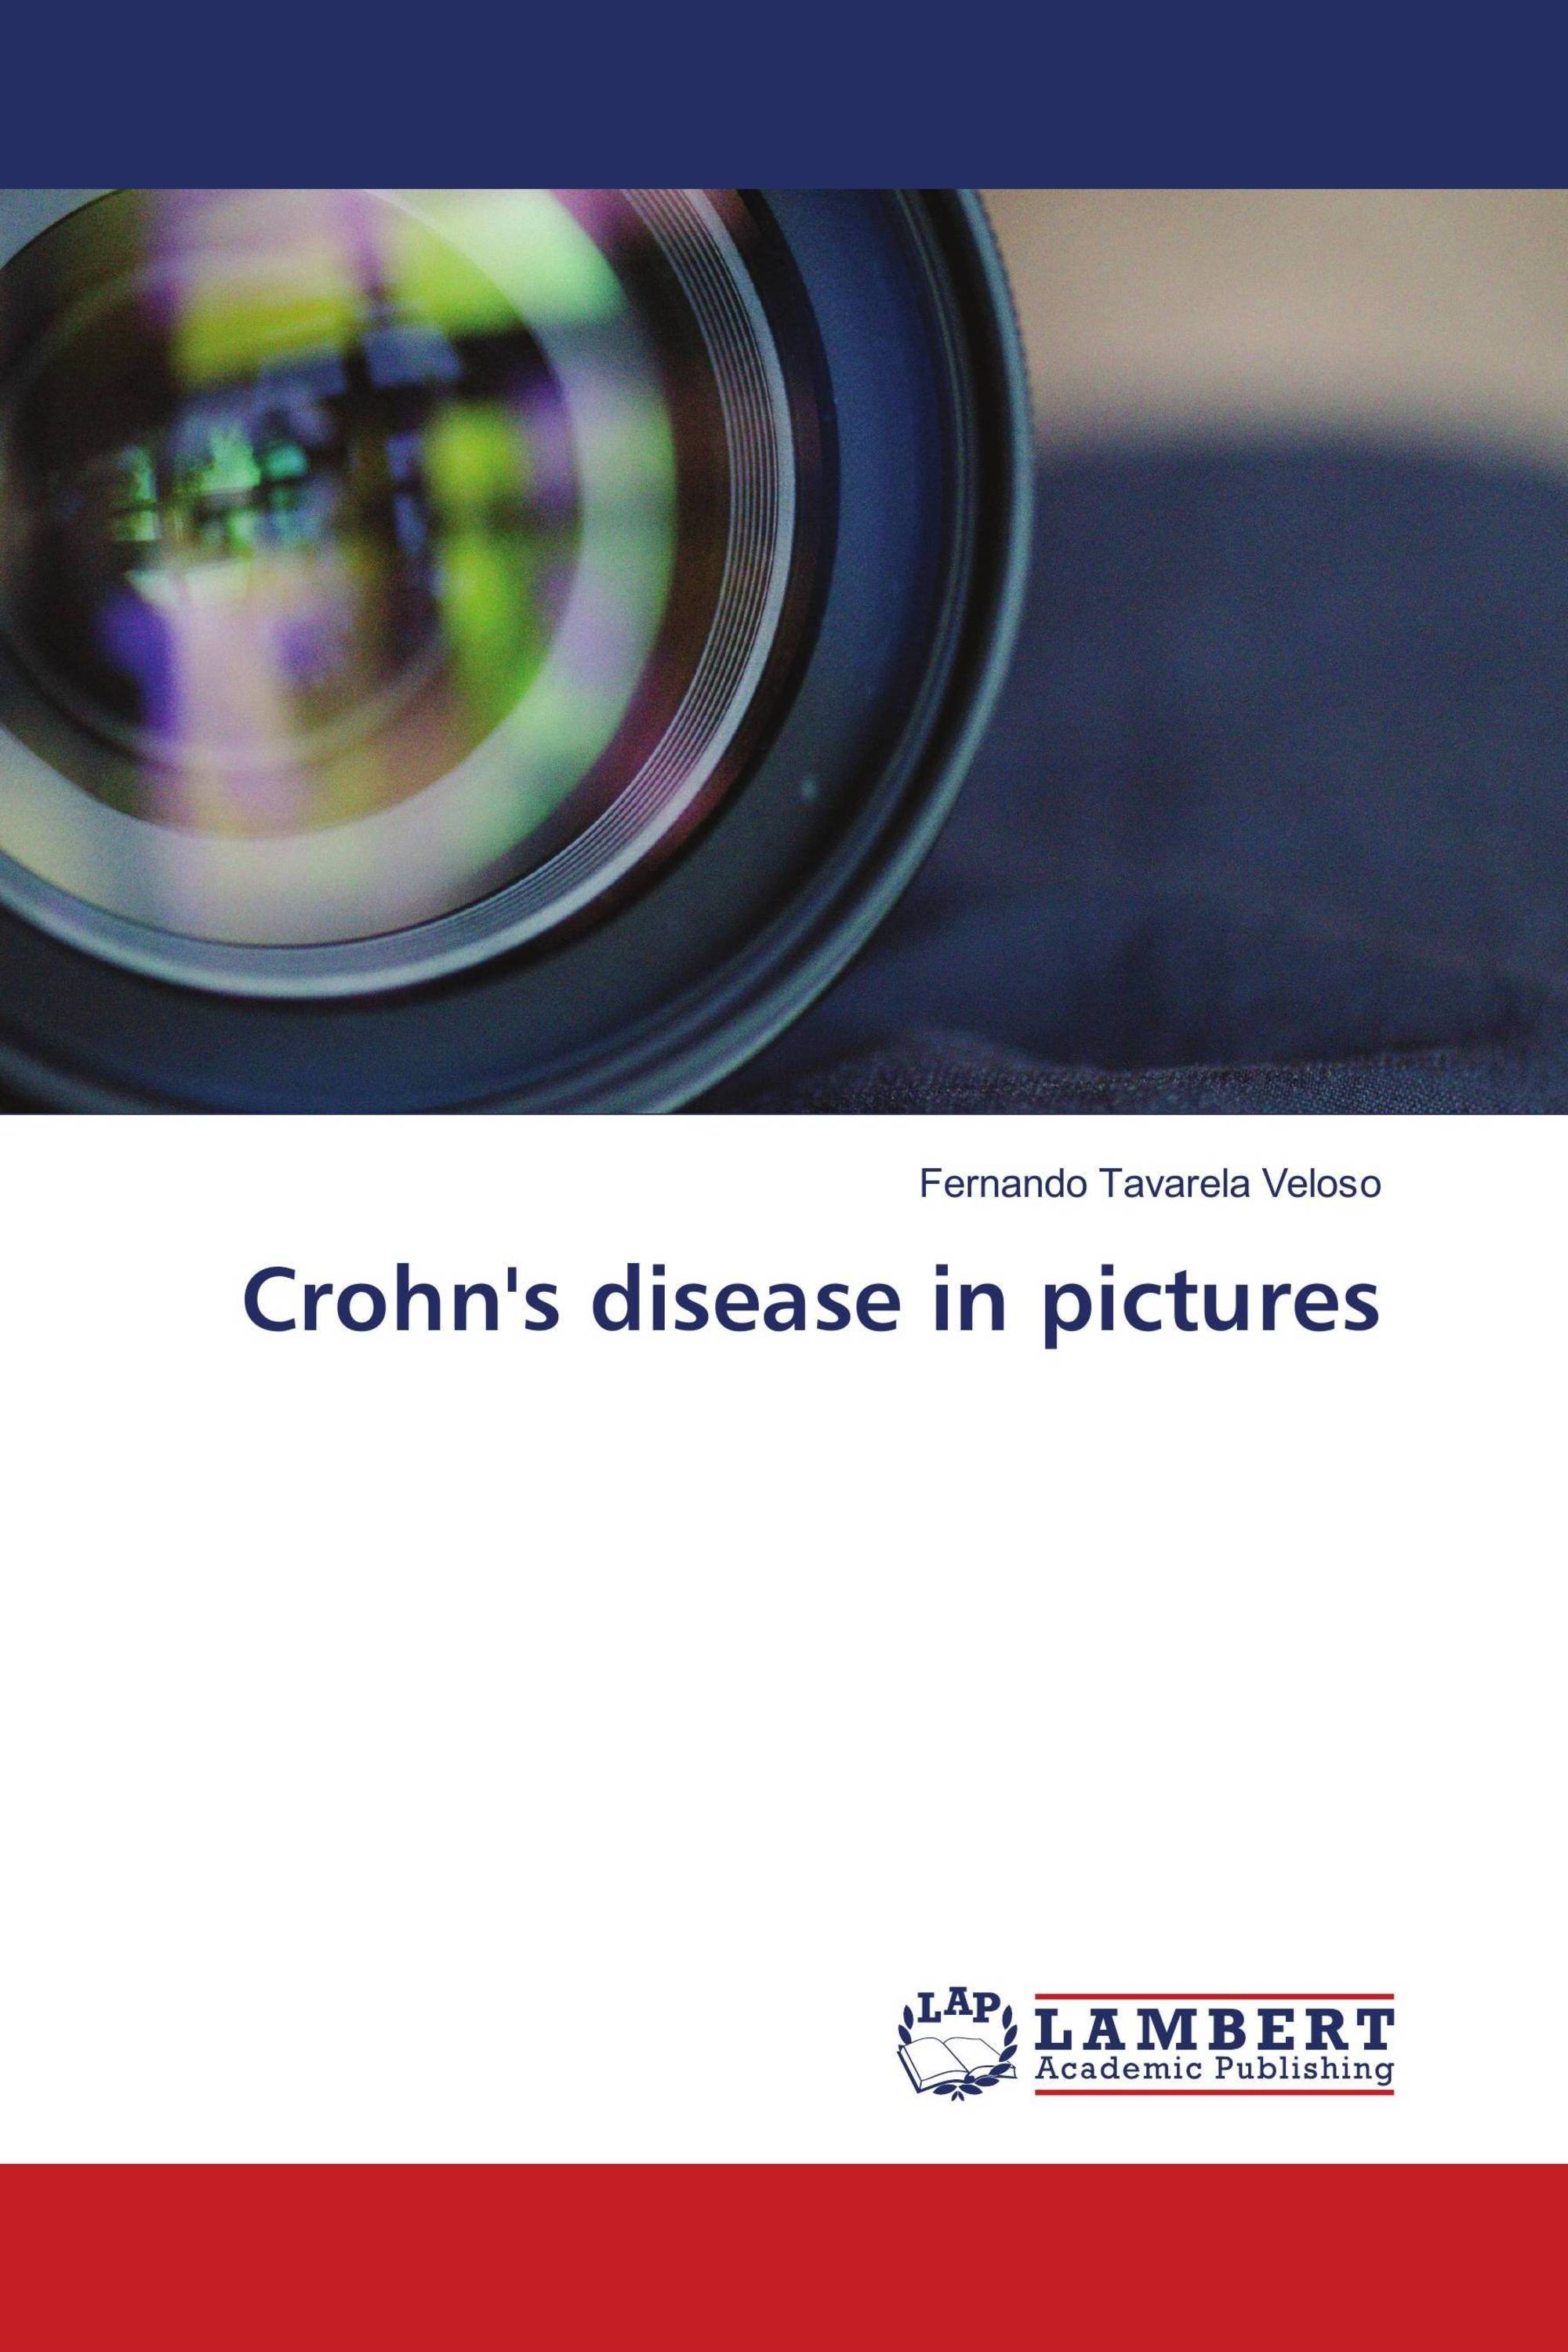 Crohn's disease in pictures